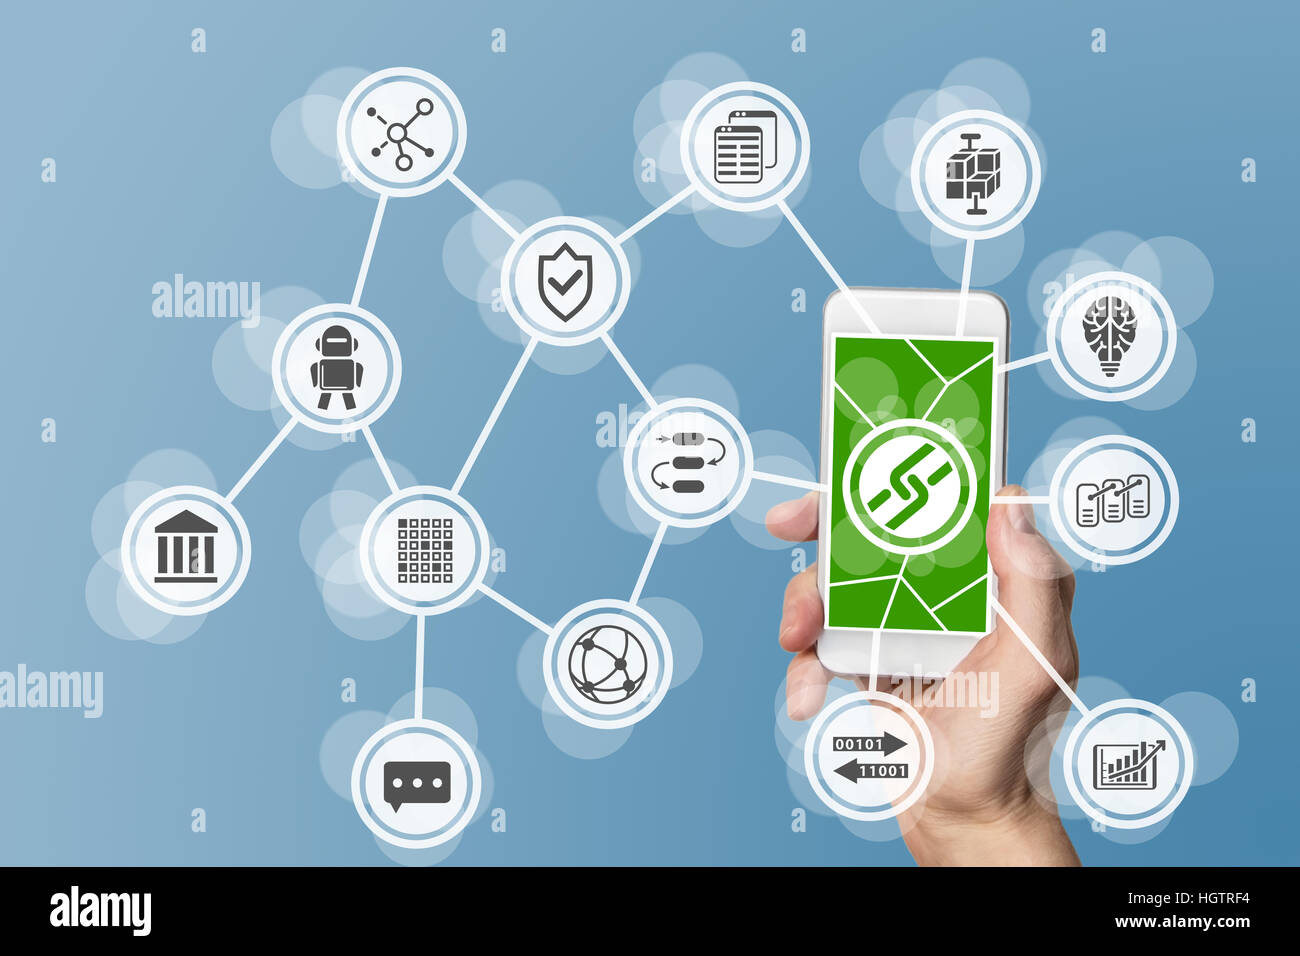 Blockchain and mobile computing background - Stock Image